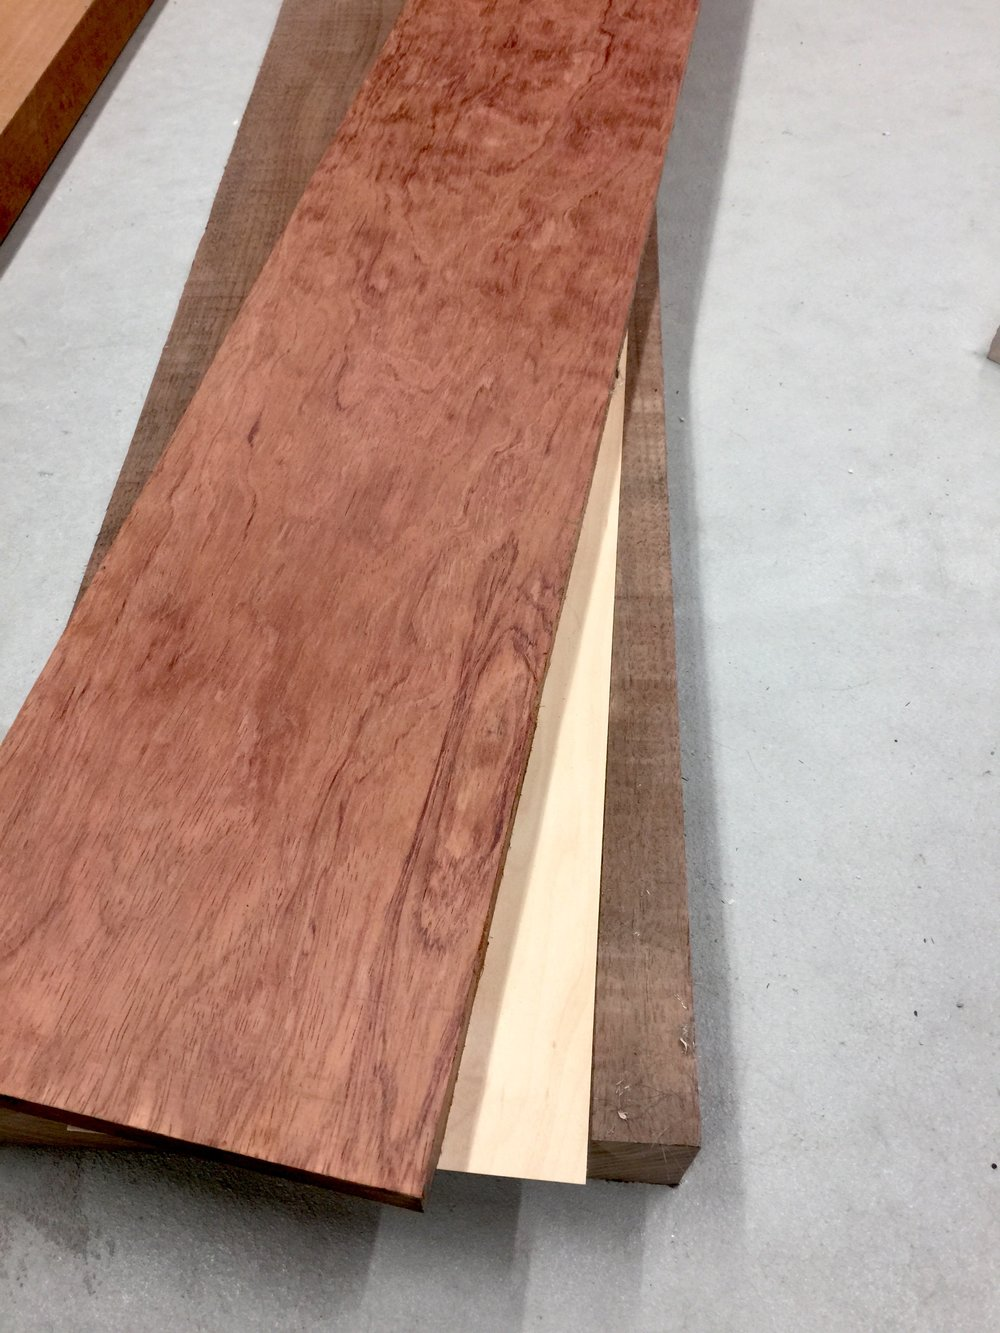 Bubinga over walnut with maple accent - Top only.jpg